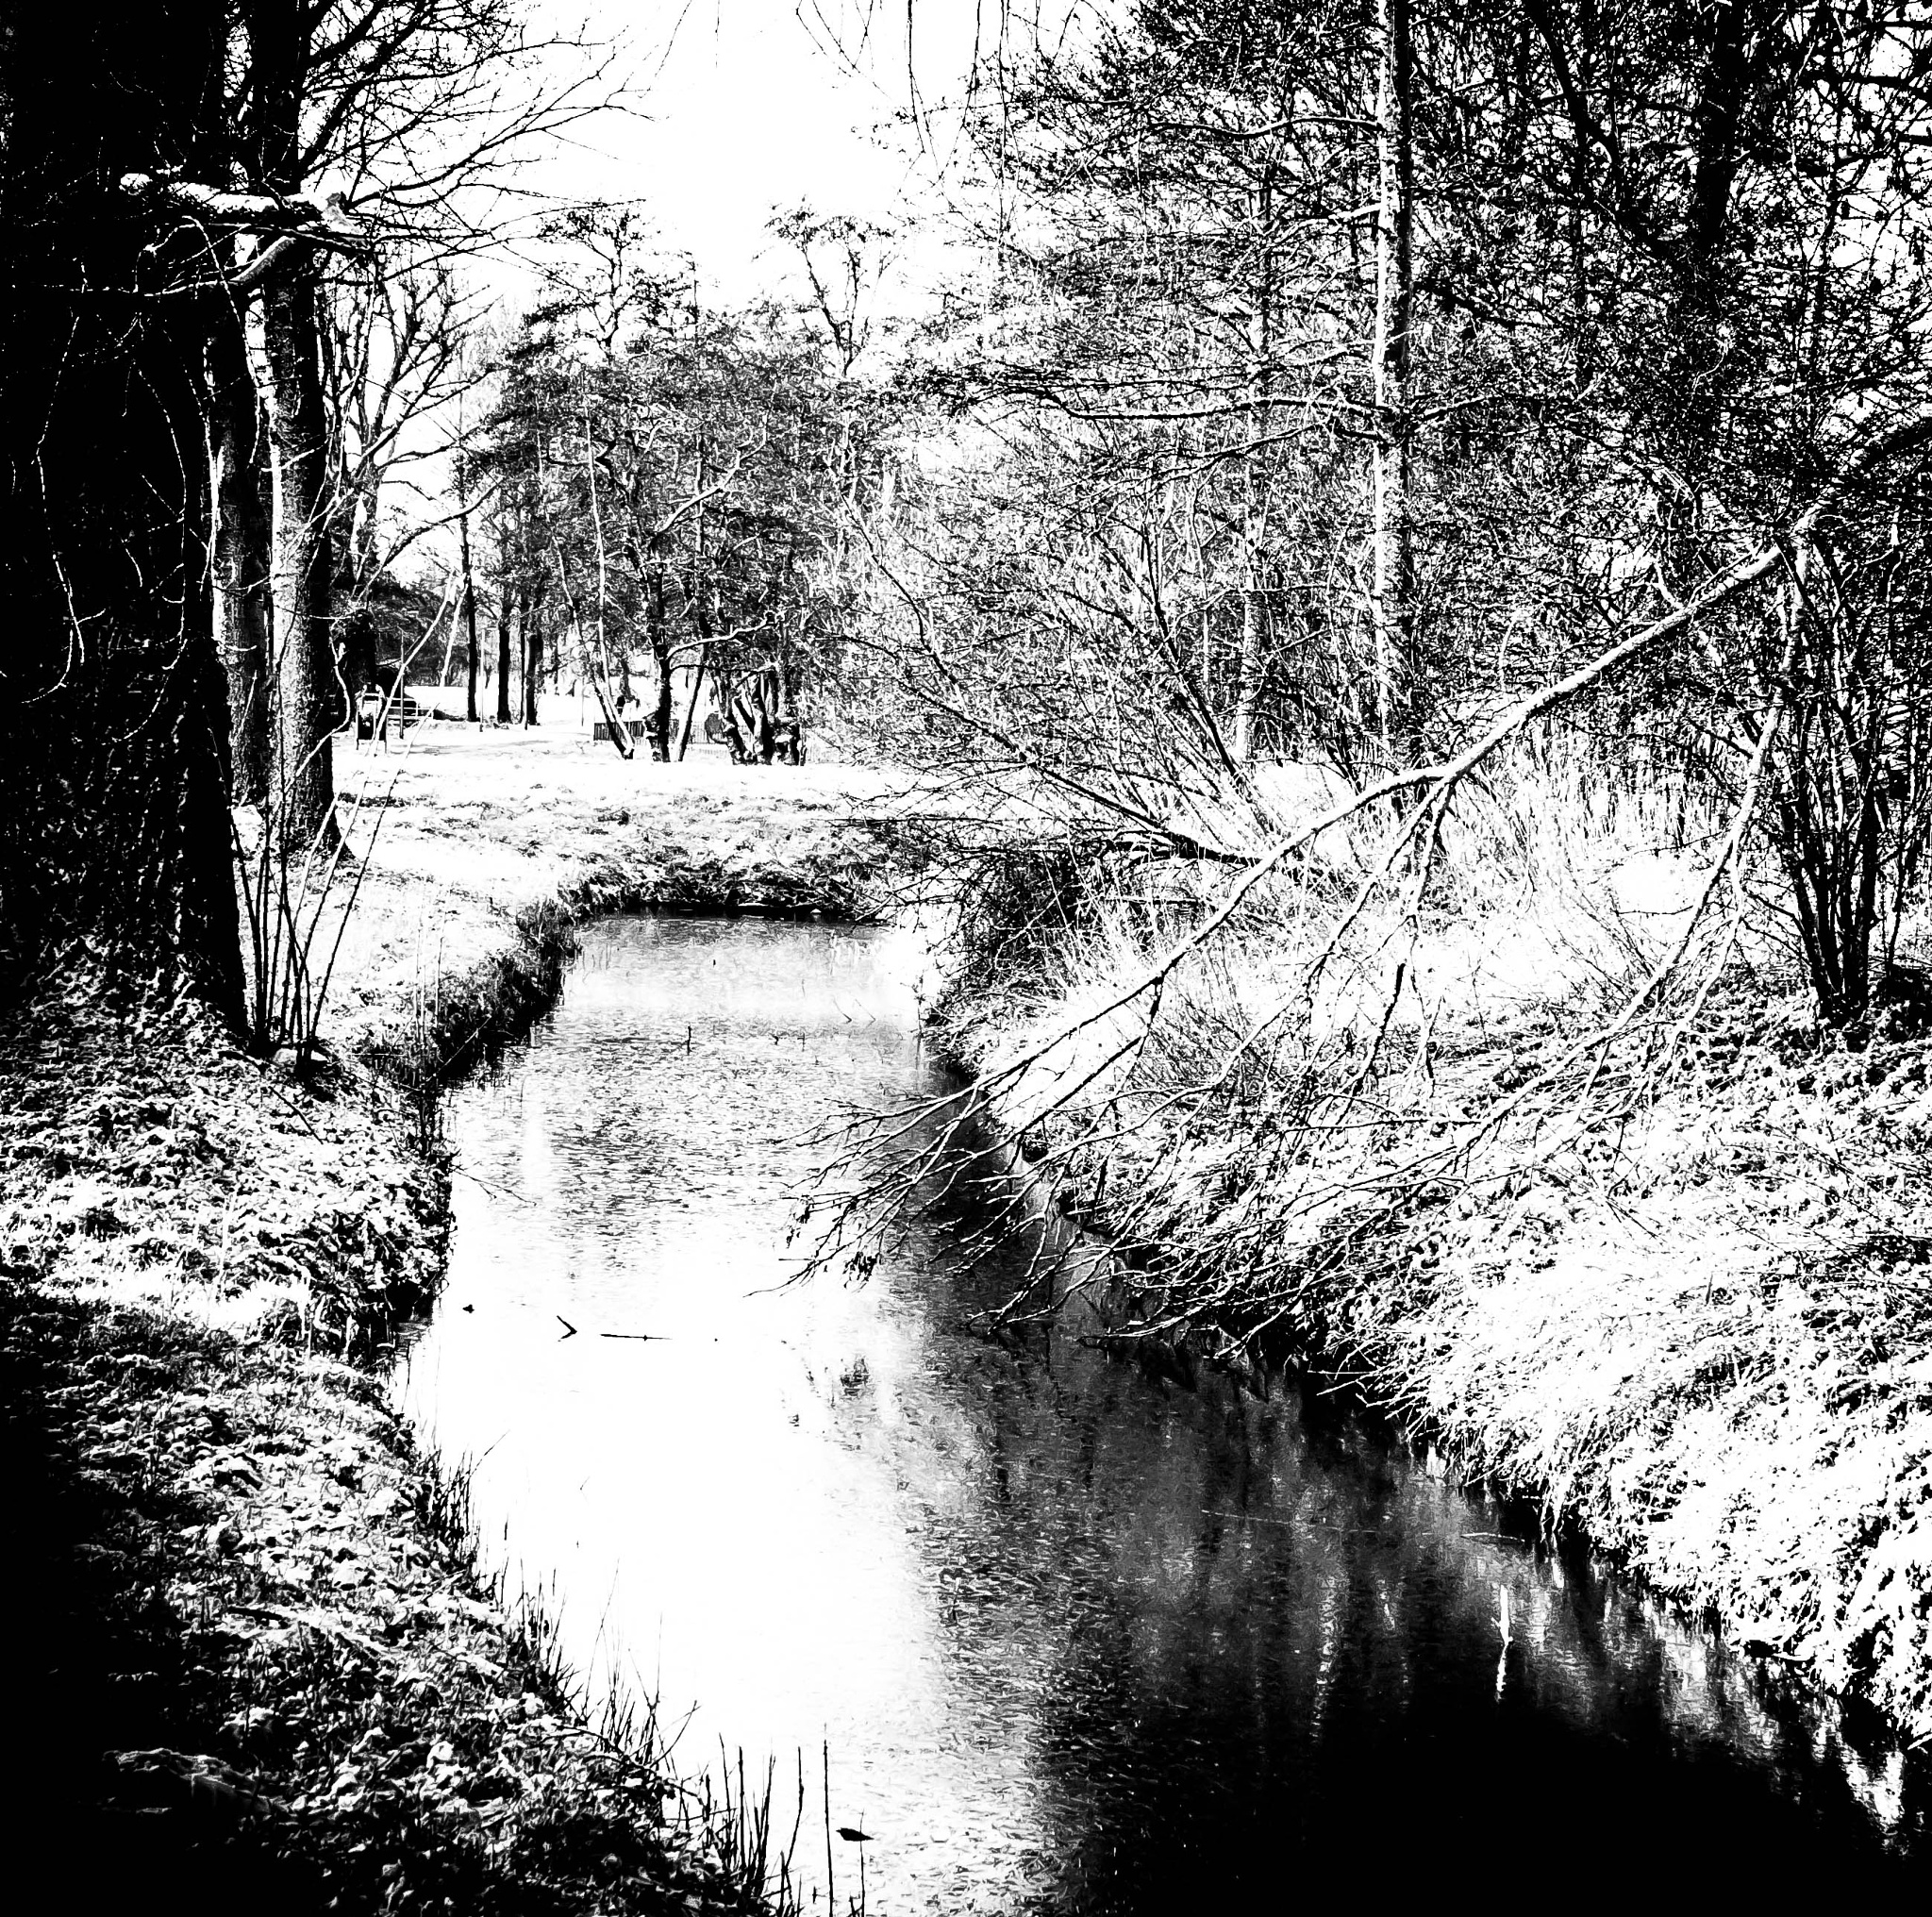 Winter in black and white by ilseBodewes